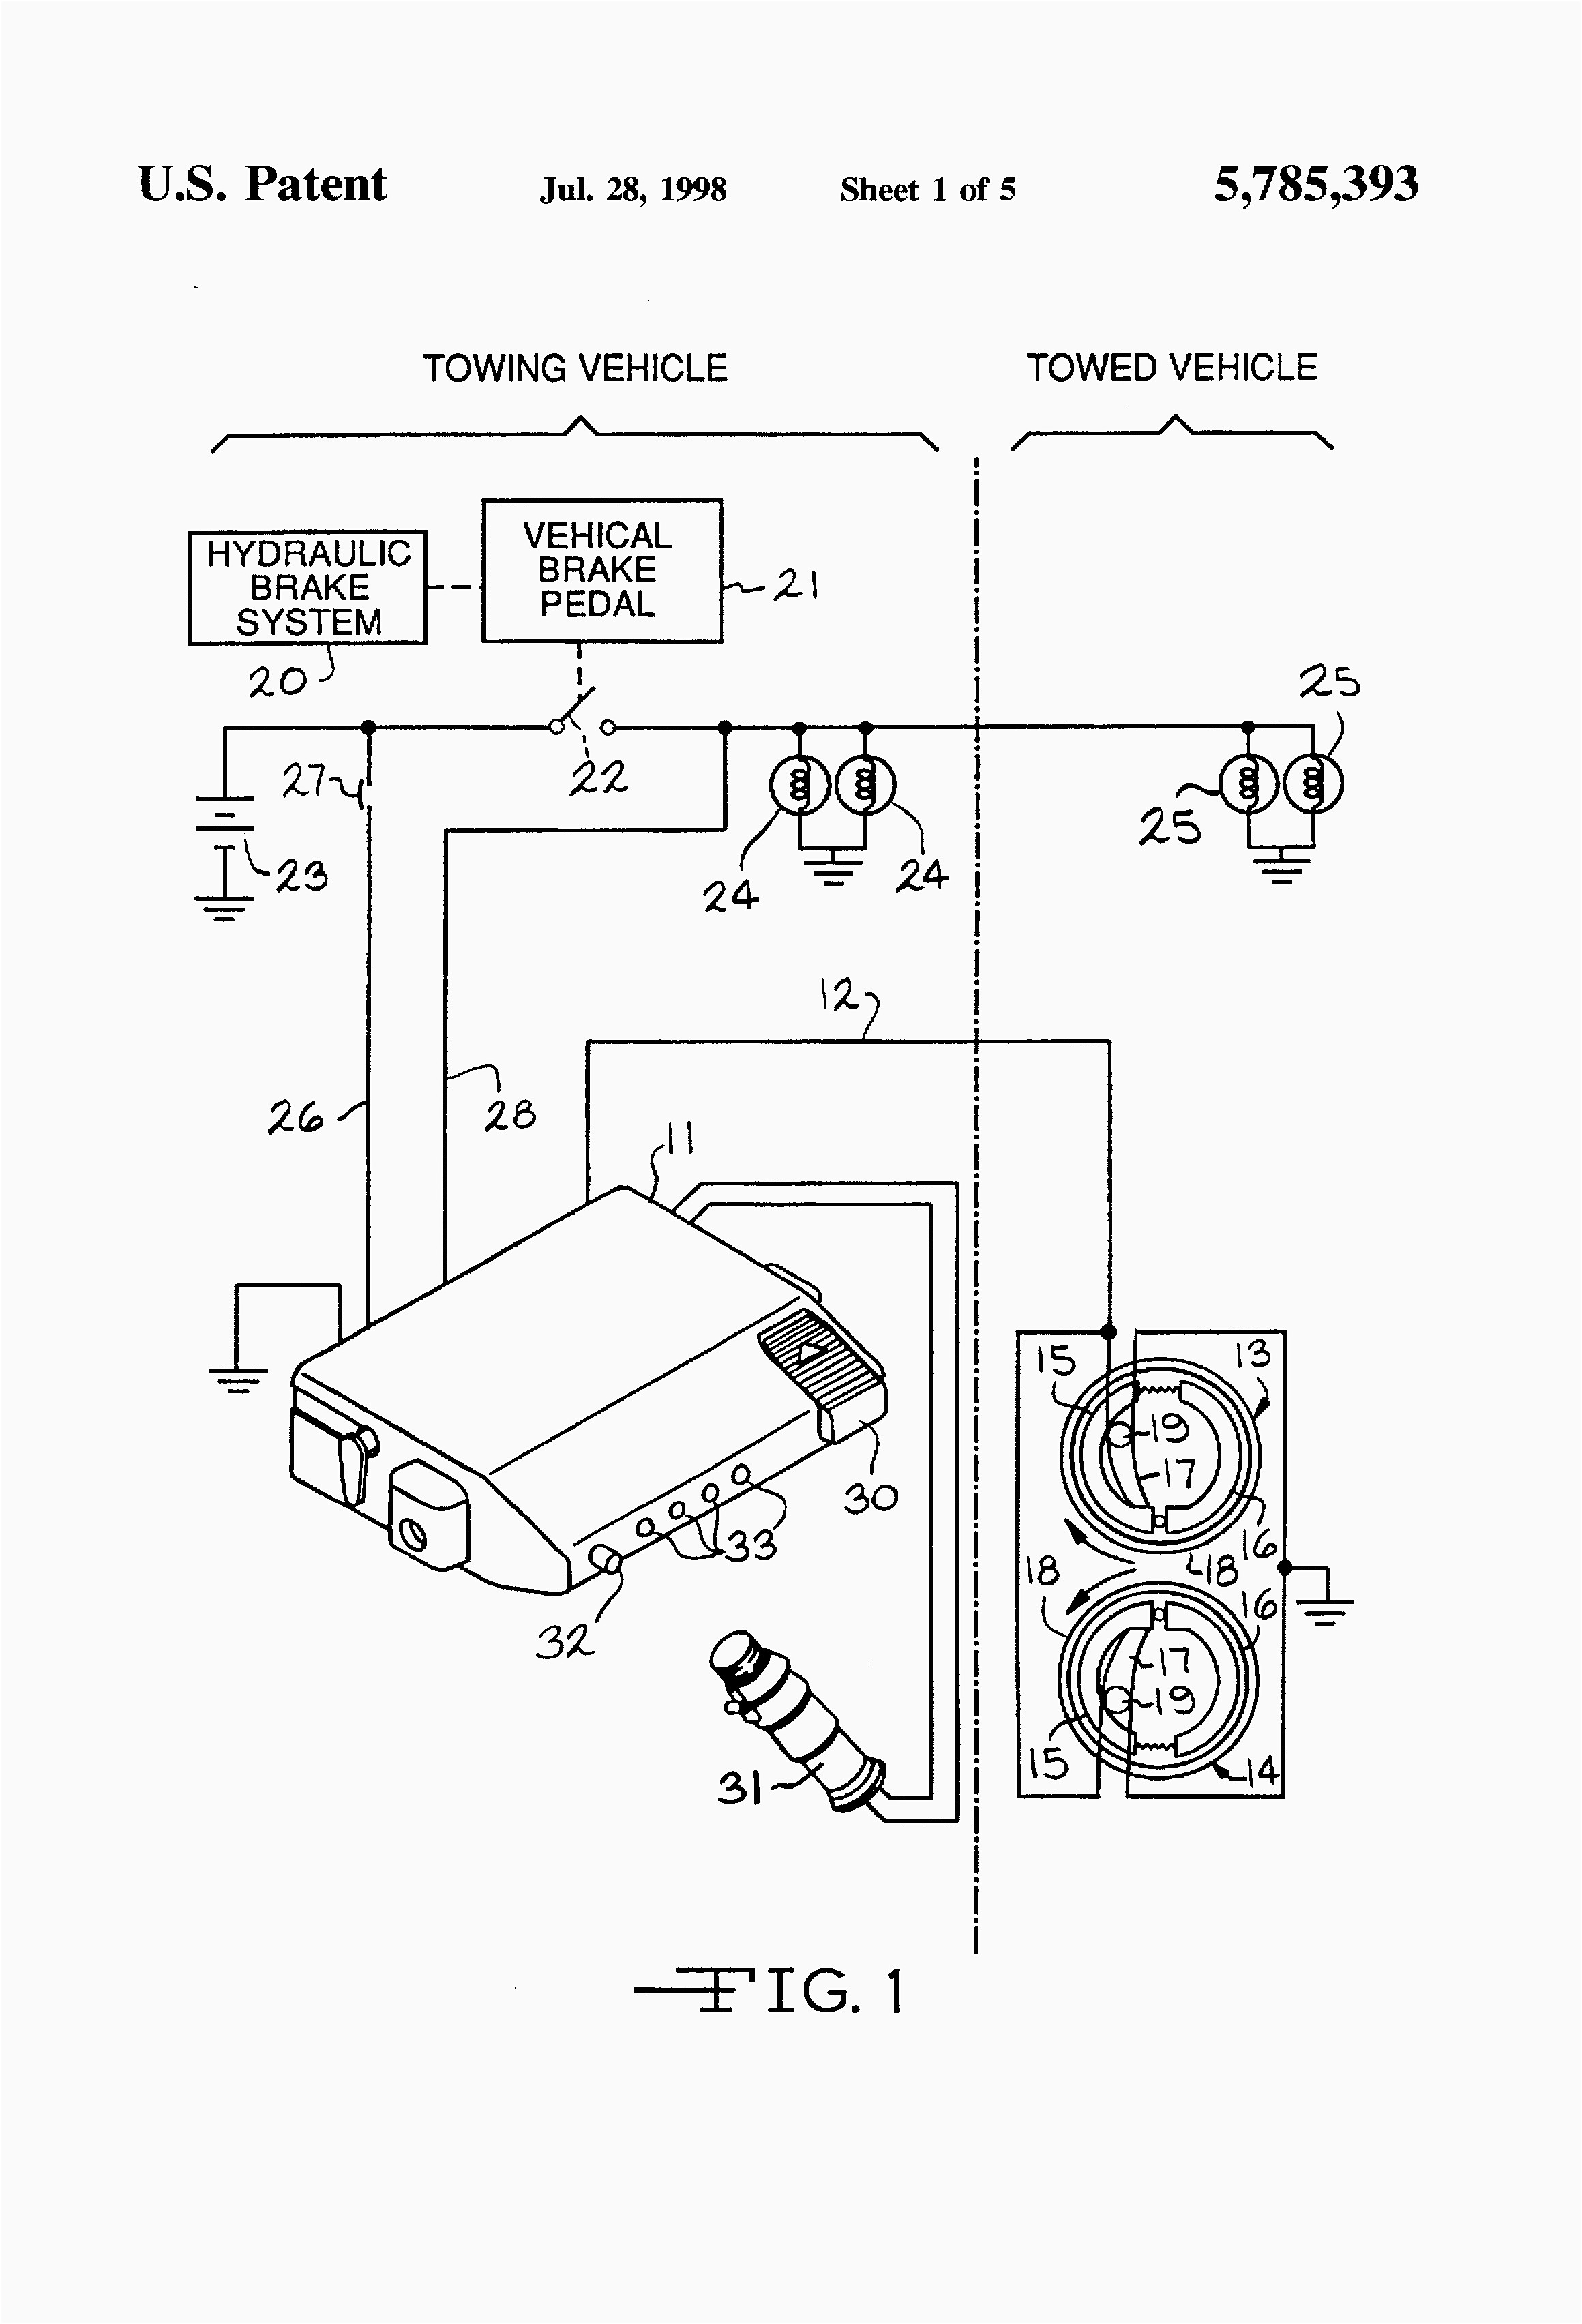 Trailer Breakaway Battery Wiring Diagram Electric Trailer Brakes Wiring Diagram Wiring Diagram Of Trailer Breakaway Battery Wiring Diagram